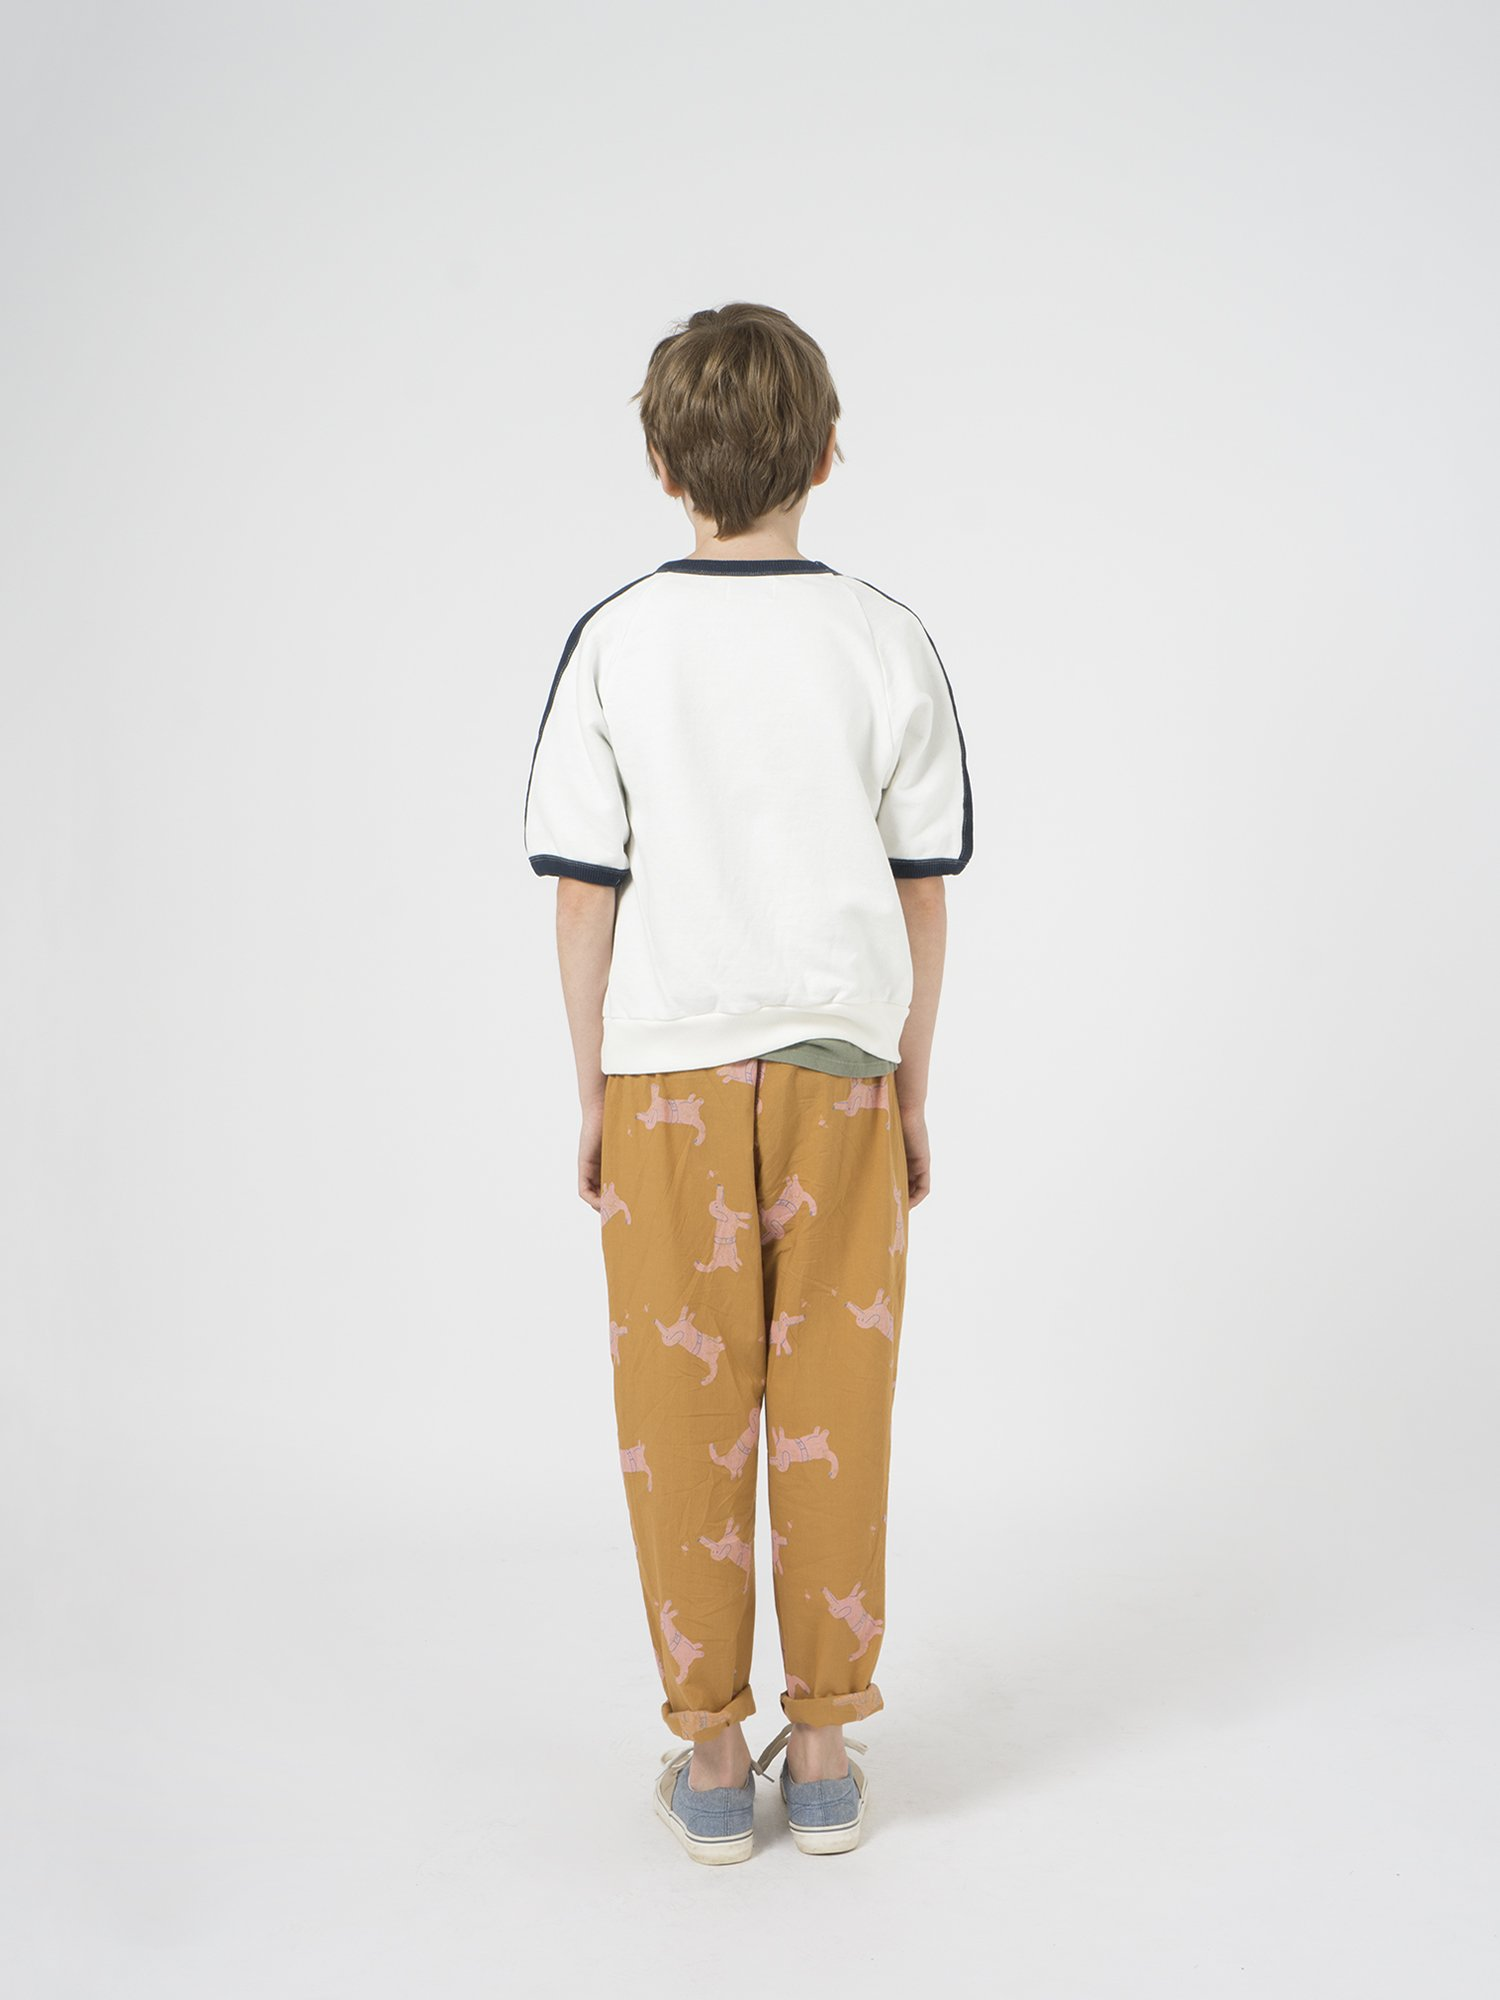 Kid Open 3/4 Sleeve Sweatshirt Look